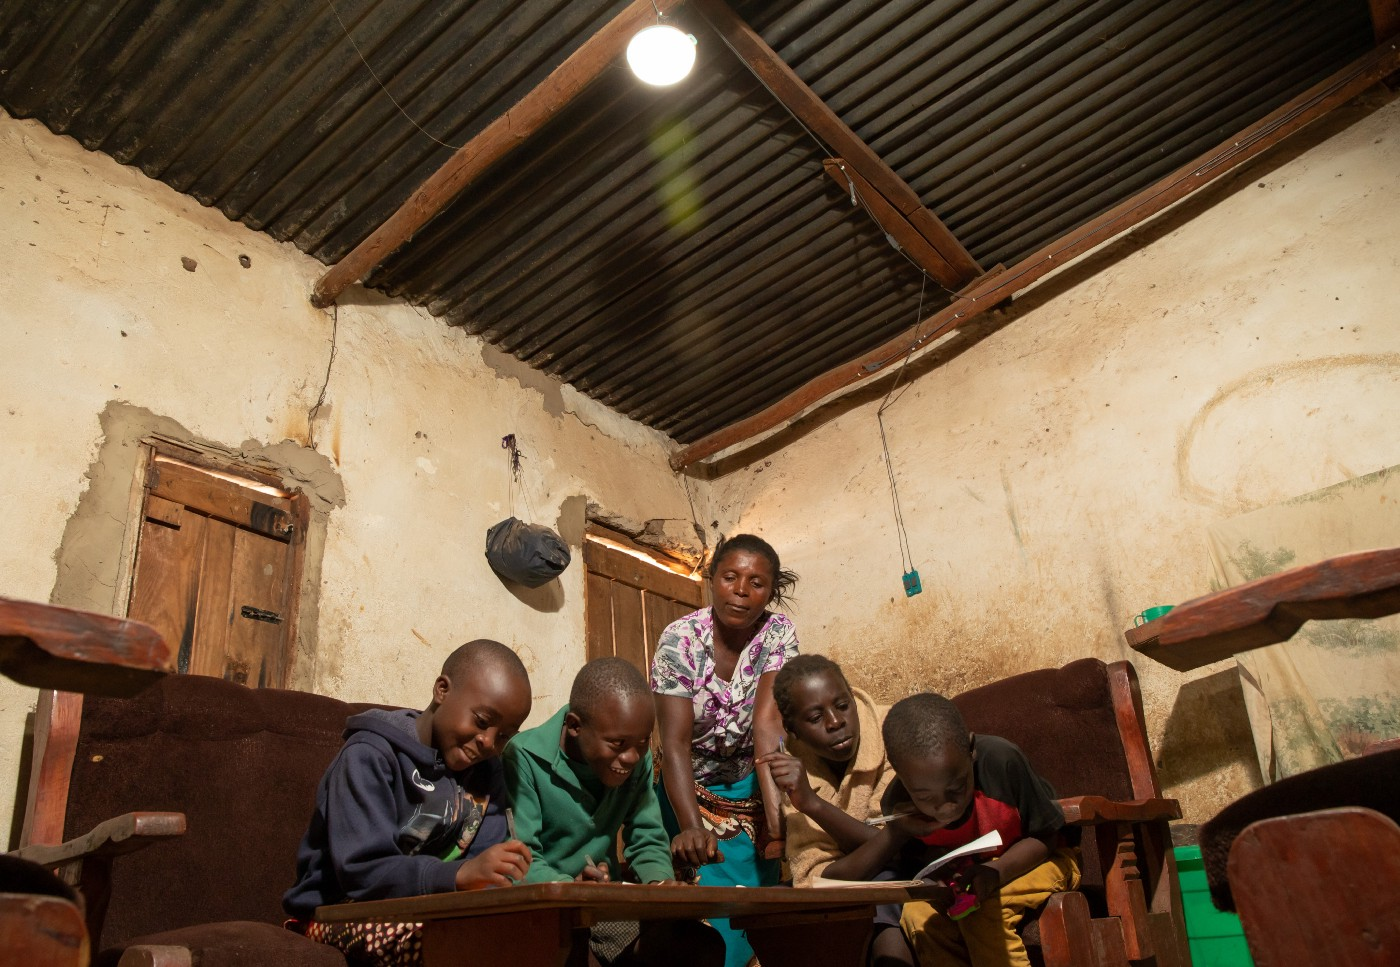 With light from a solar-powered lamp, children are able to do homework at night.